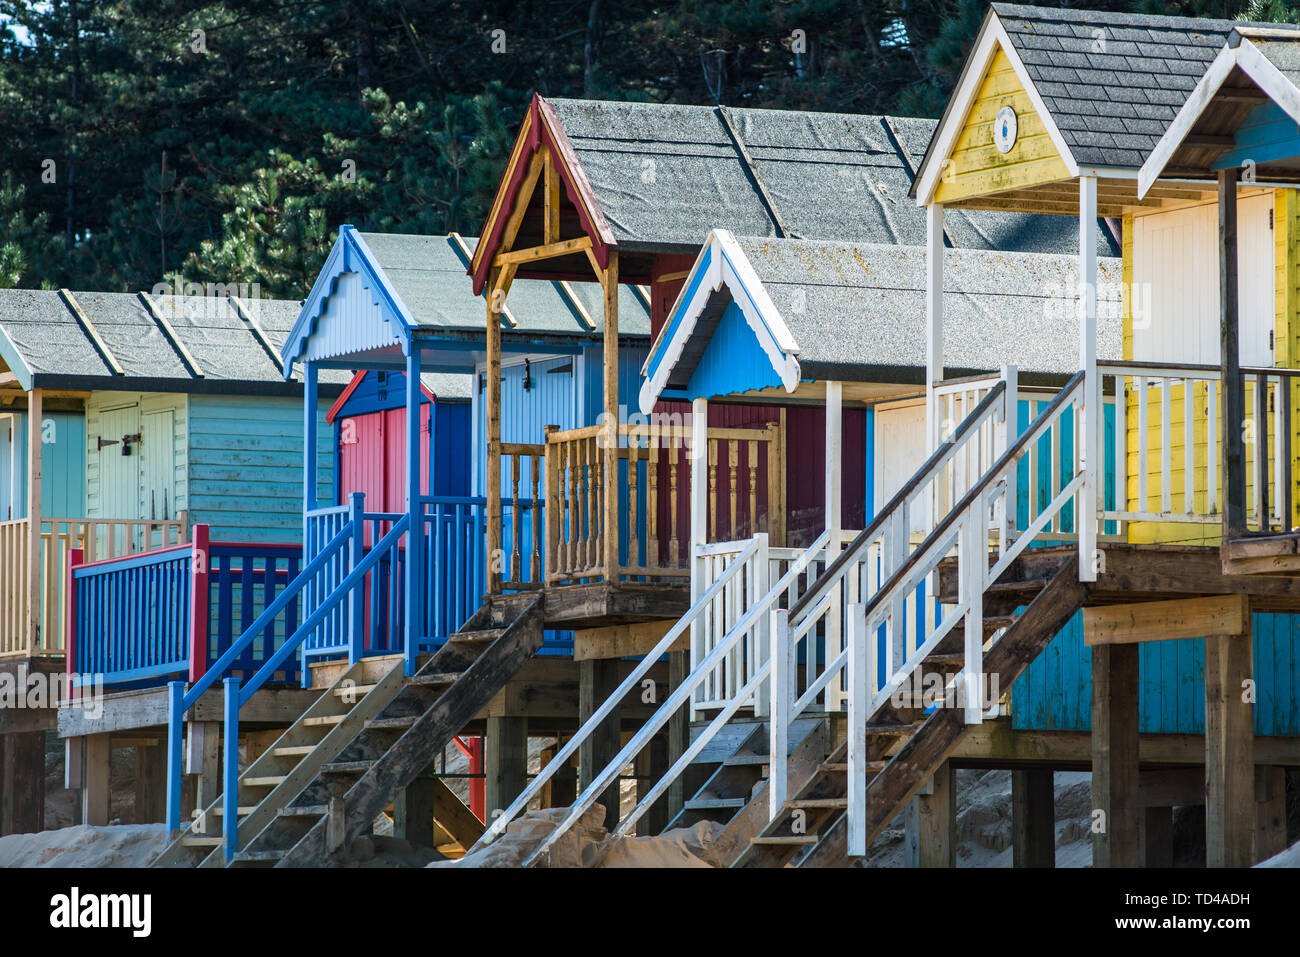 Colourful beach huts on Wells beach at Wells next the Sea on North Norfolk coast, Norfolk, East Anglia, England, United Kingdom, Europe Stock Photo